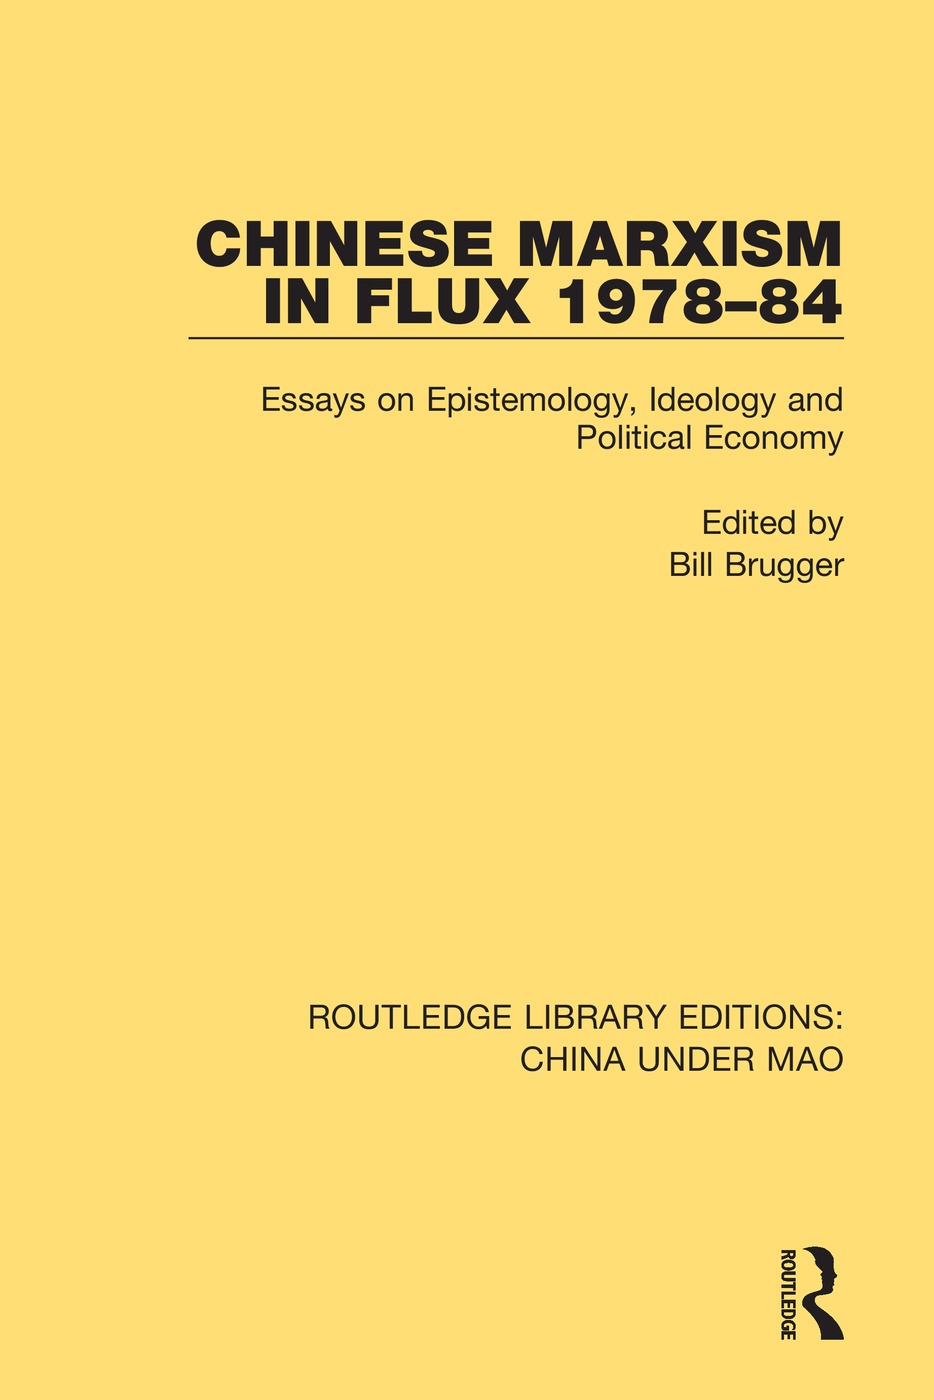 Chinese Marxism in Flux 1978-84: Essays on Epistemology, Ideology and Political Economy book cover